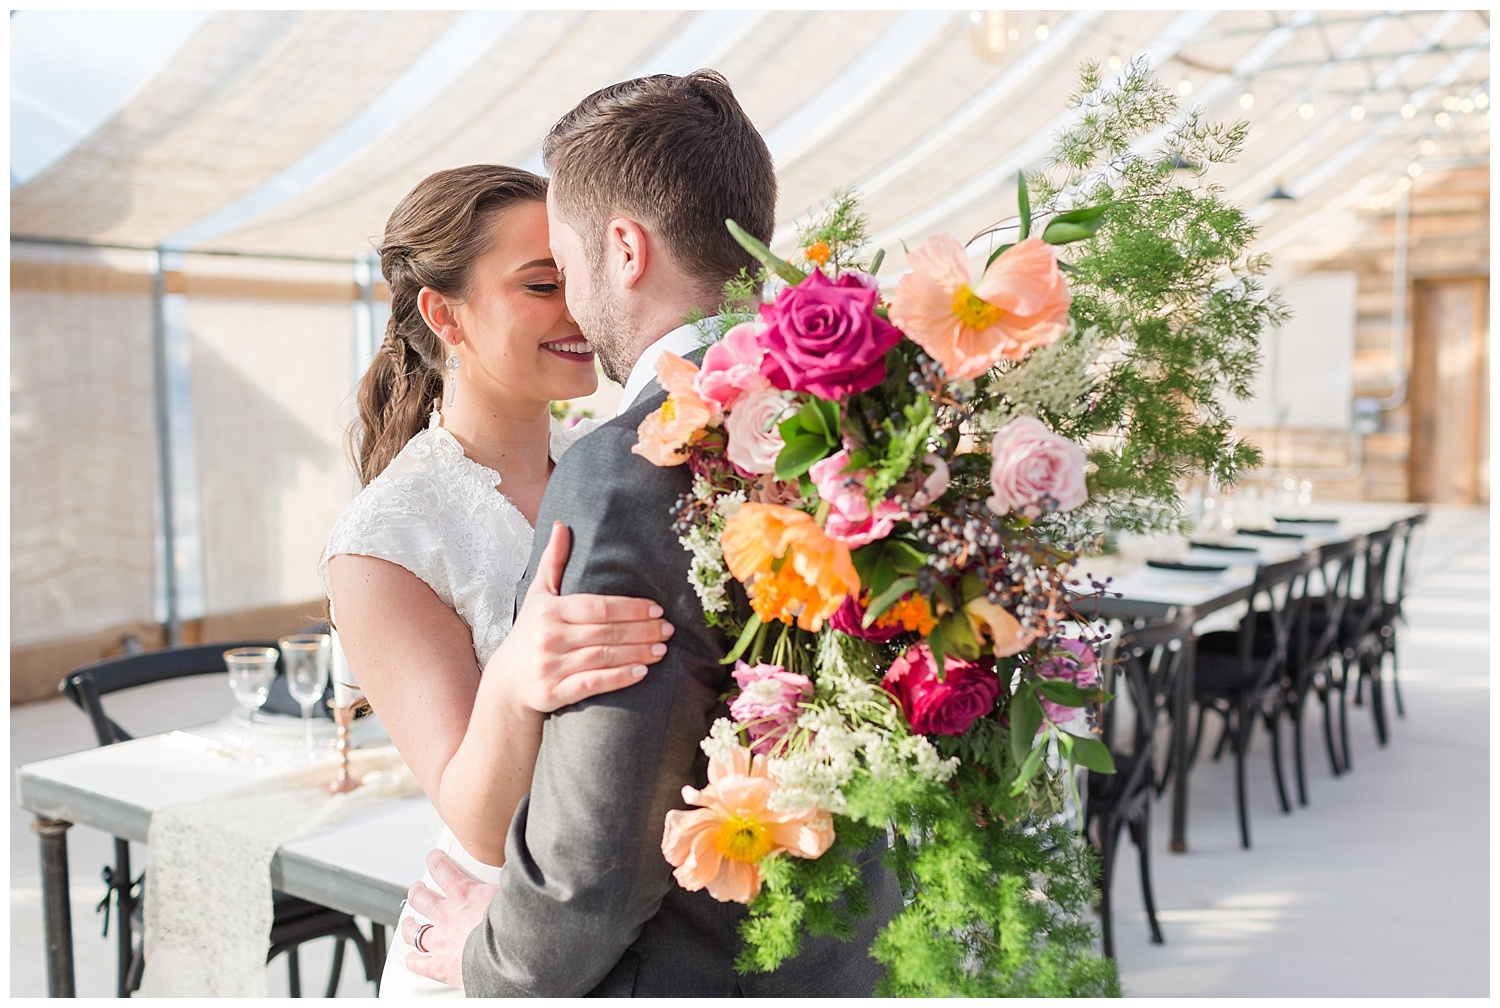 Spring Wedding Inspiration | Bast Brothers Garden Center | Mullica Hill, NJ | www.redoakweddings.com